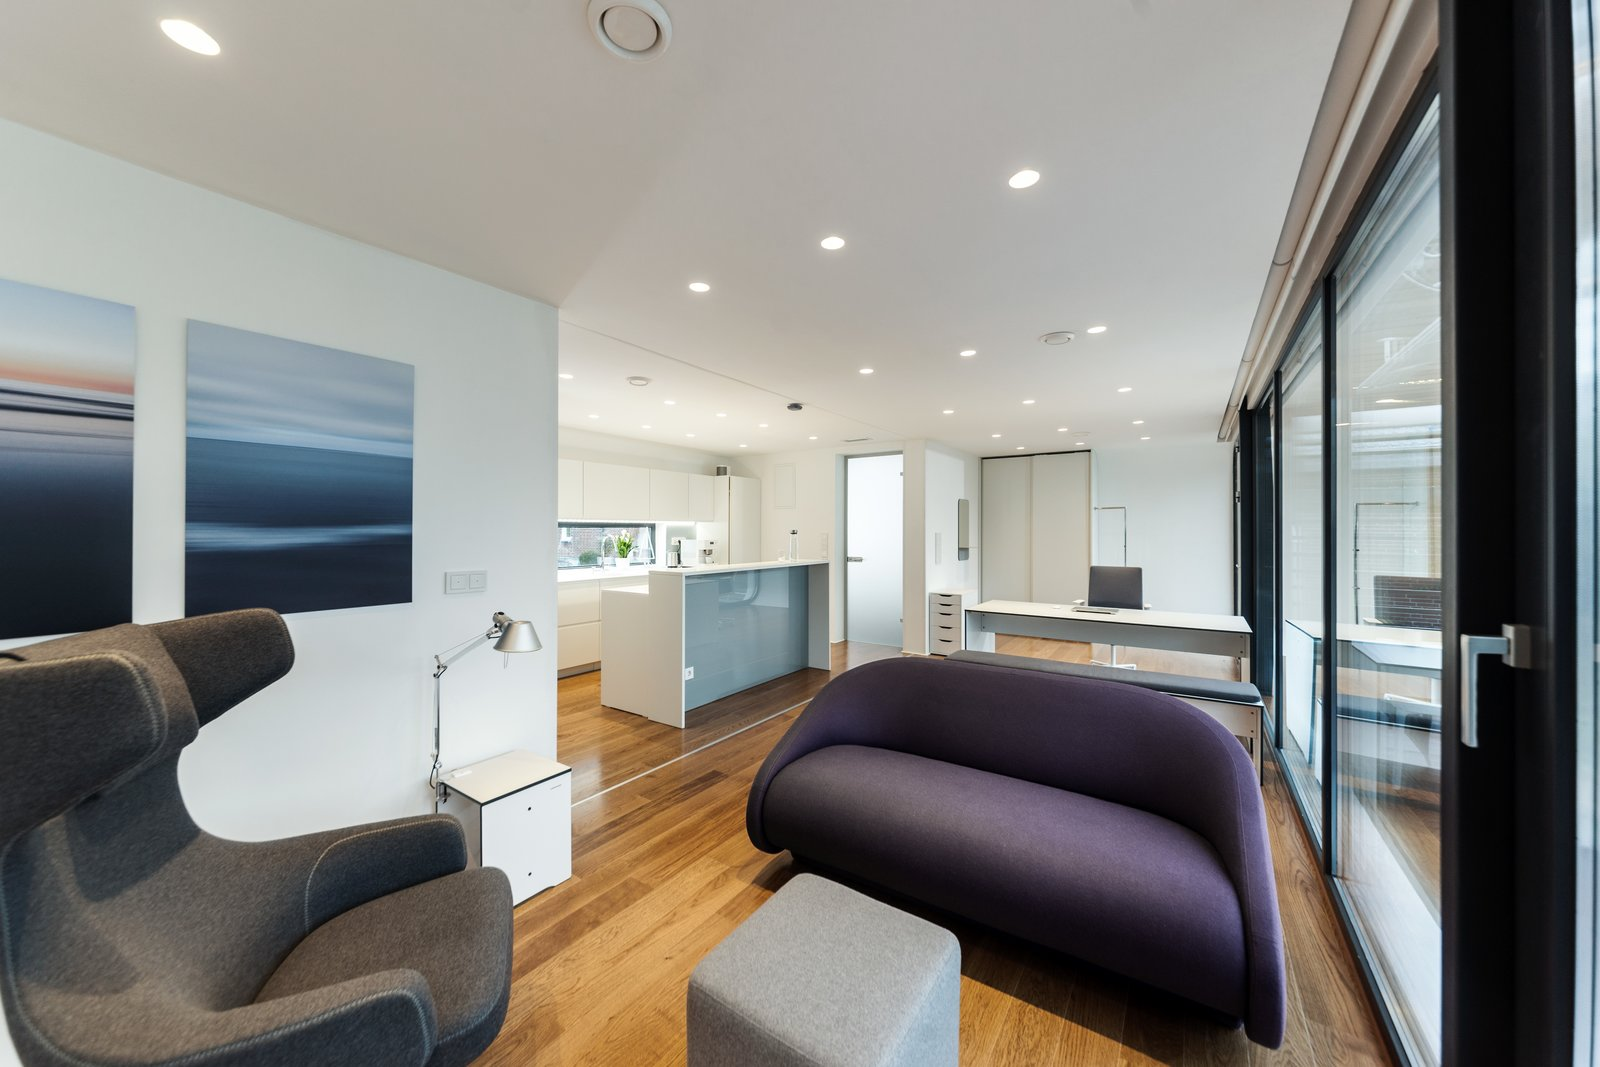 Living Room, Desk, Chair, Sofa, Recessed Lighting, Medium Hardwood Floor, Table Lighting, Bench, Ottomans, and Bar Coodo's sleek design features wireless technology.  Photo 4 of 12 in Meet the Prefab Unit That's Smart, Mobile, and Sustainable